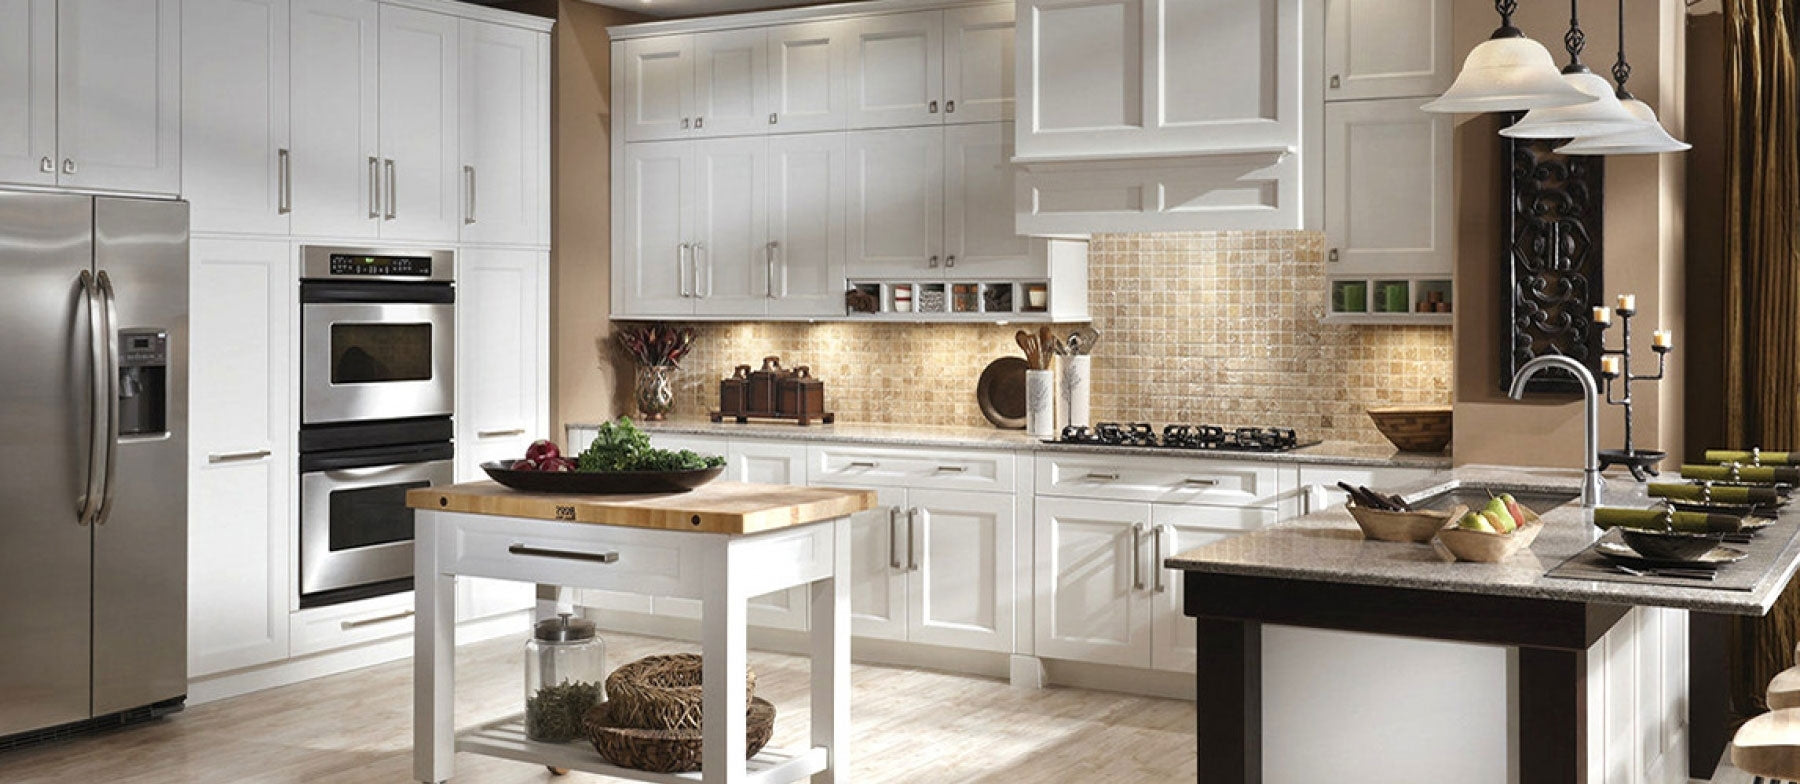 A renovated Kitchen décor remodeling done by Customdecor